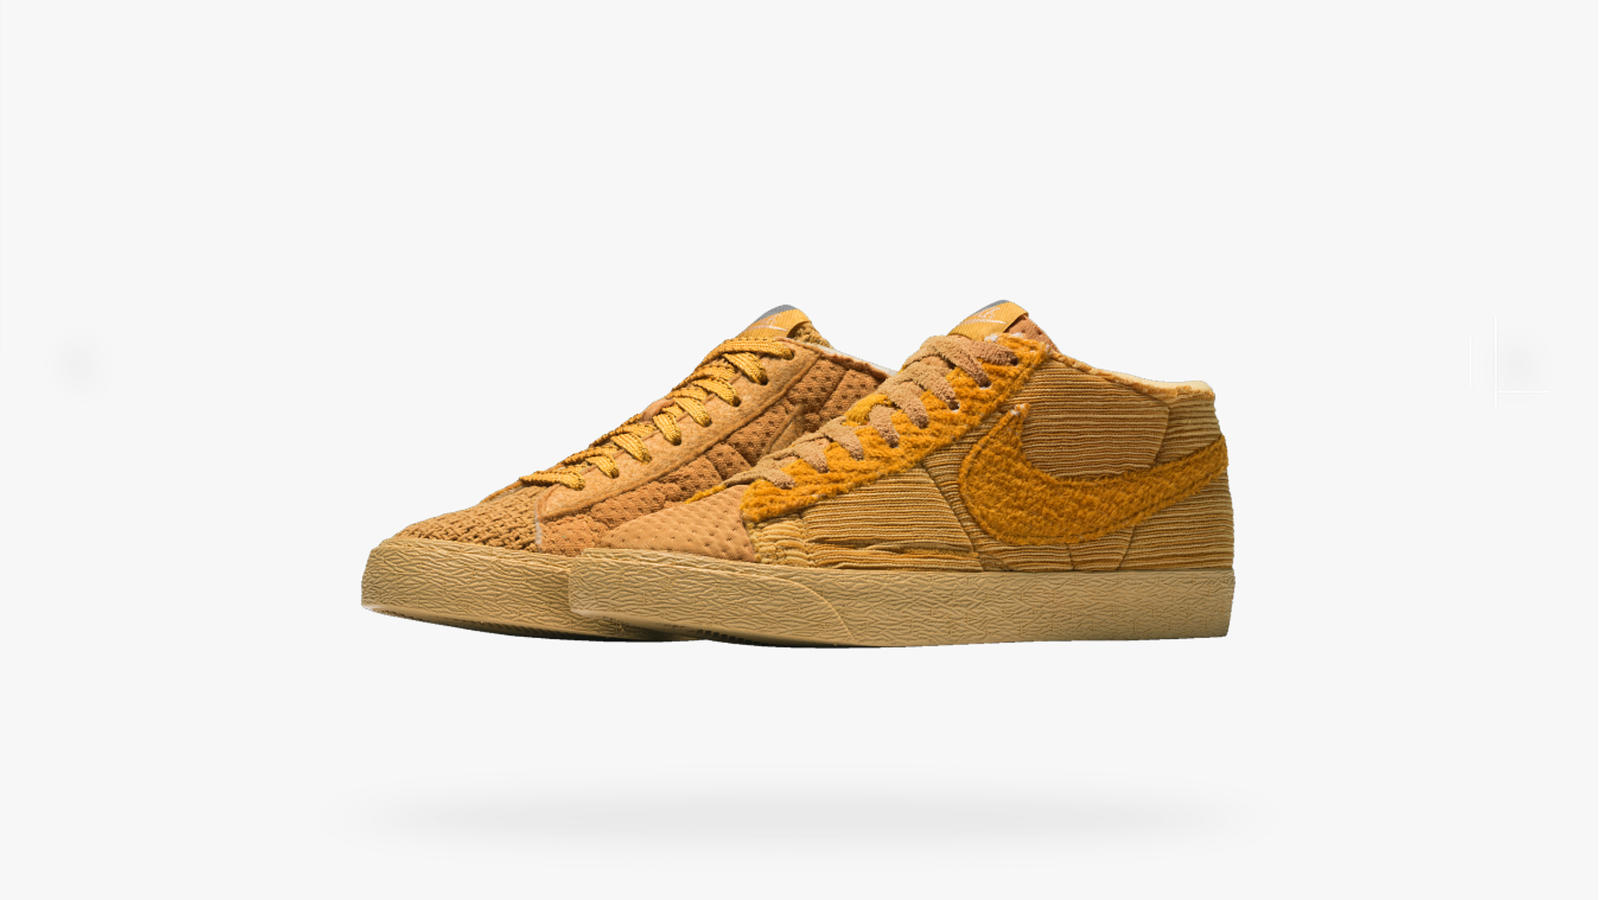 Nike Blazer CPFM Sponge By You official Release Info 12